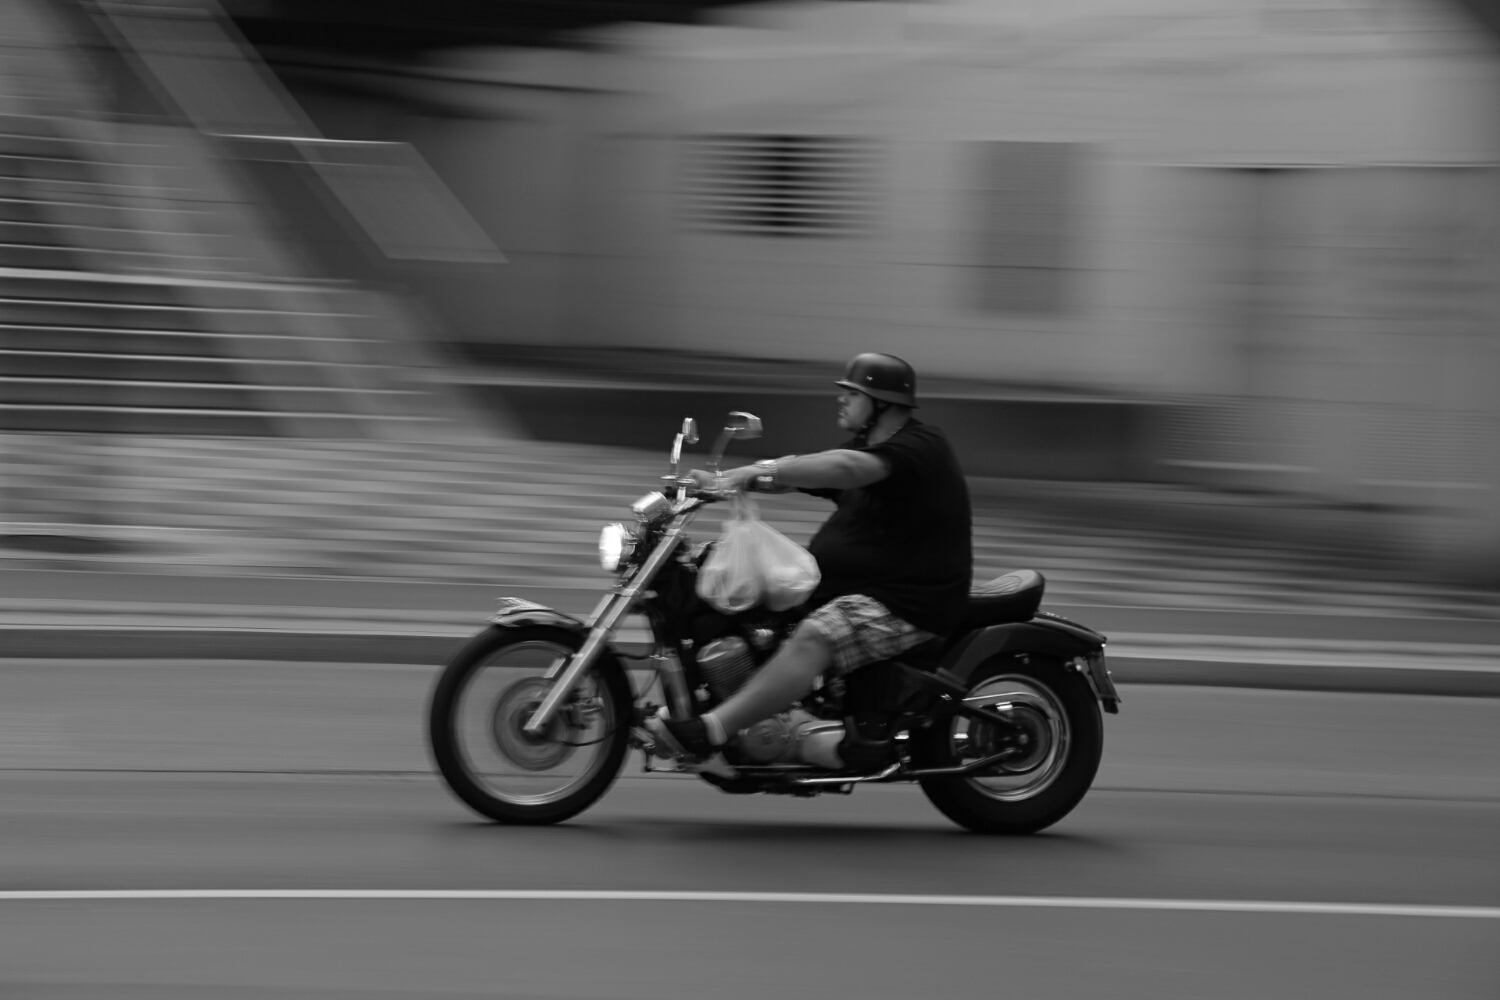 even hell's angels need shopping (Canon 6D)